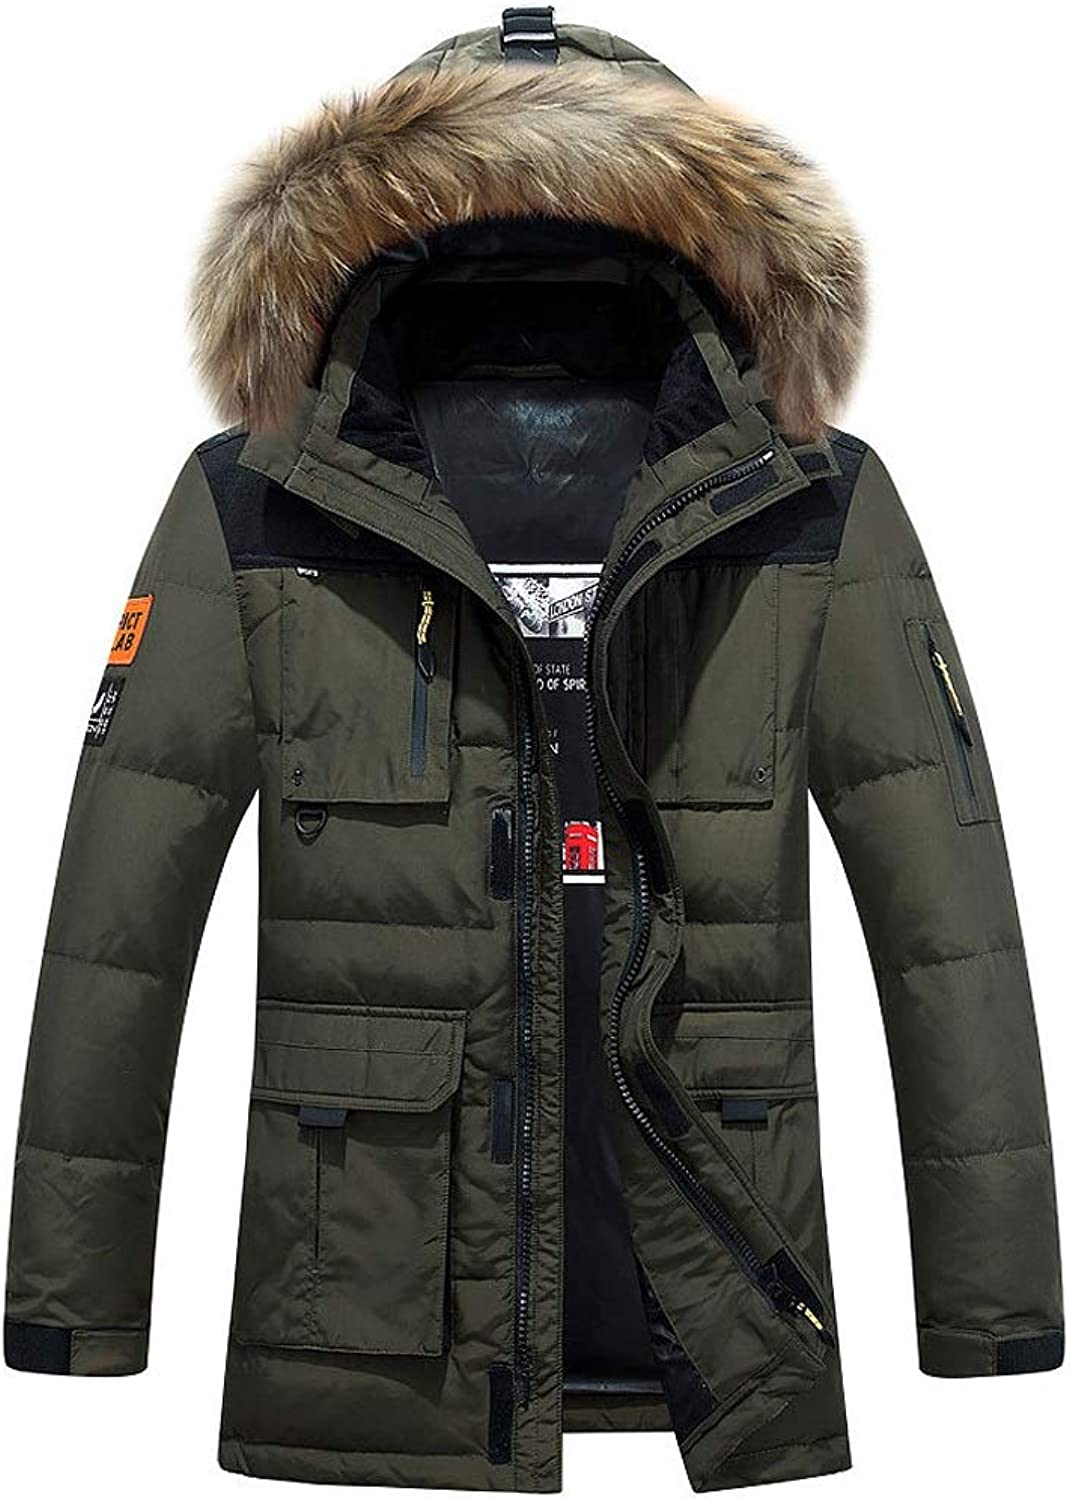 New Down Jacket, Men's Casual Short Hooded Jacket with Large Fur Collar, Winter Outdoor Cold Warm Clothing (color   Green, Size   M)